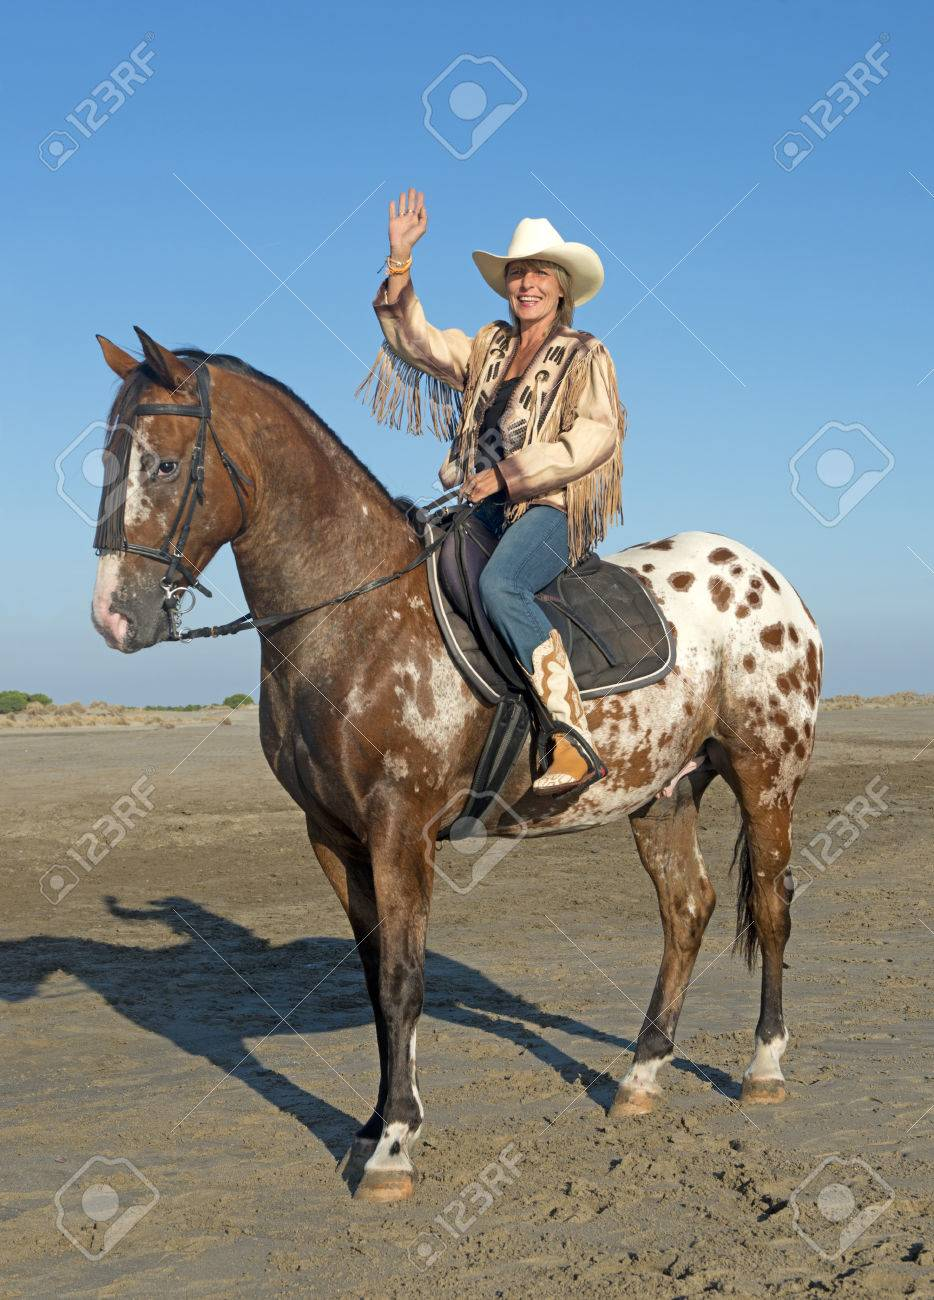 Cowgirl On Appaloosa Horse On The Beach Stock Photo Picture And Royalty Free Image Image 63264166